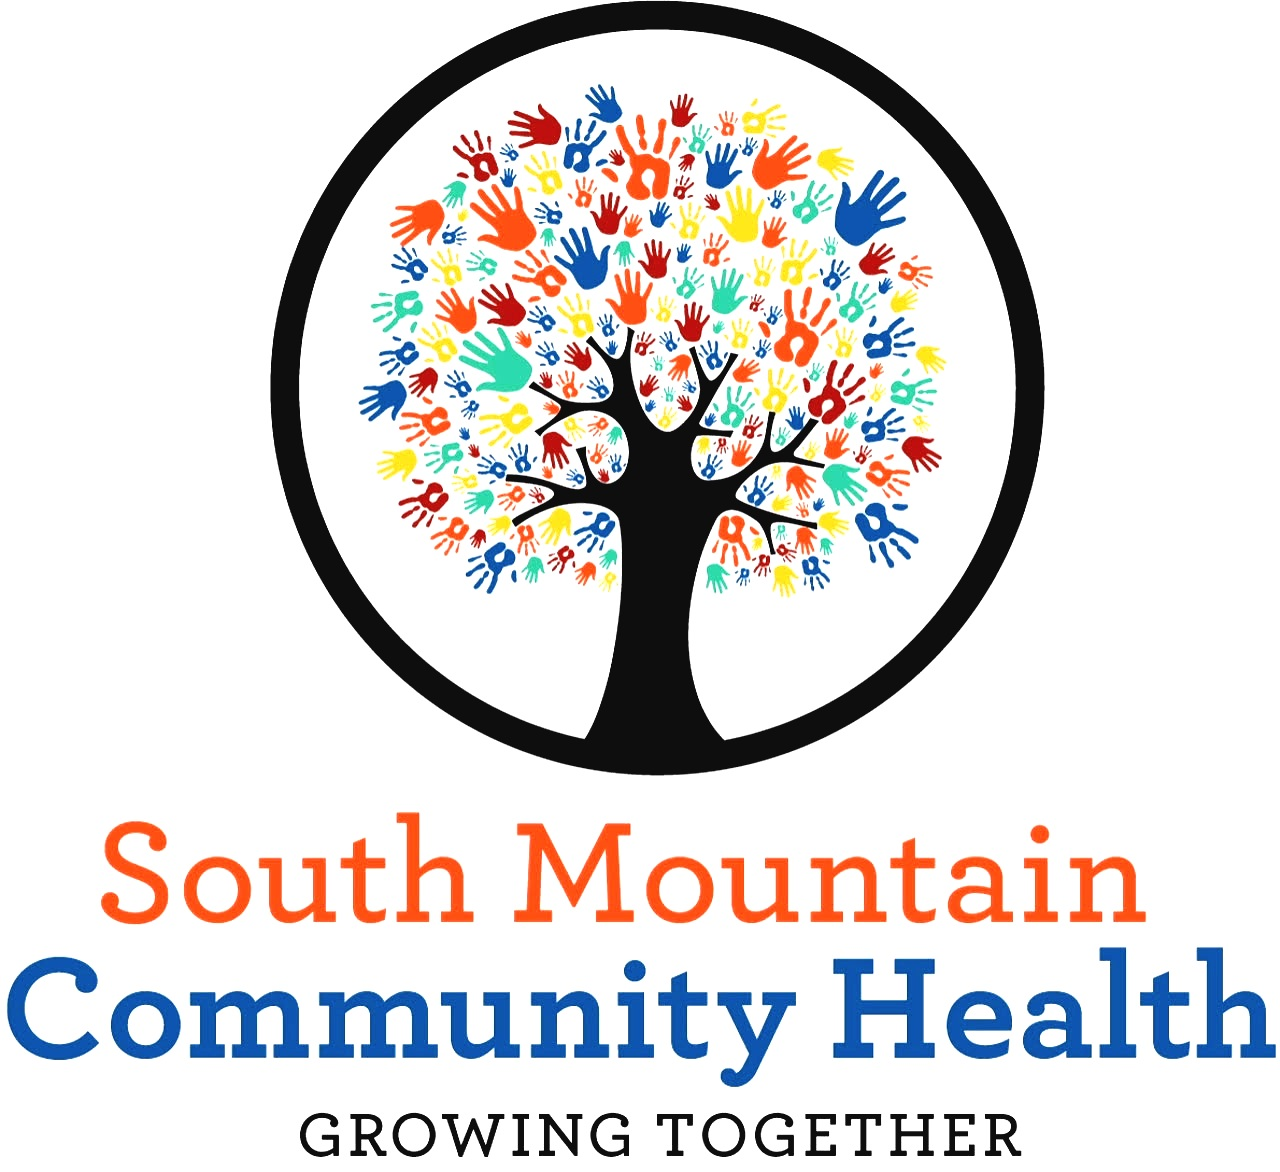 South Mountain Community Health